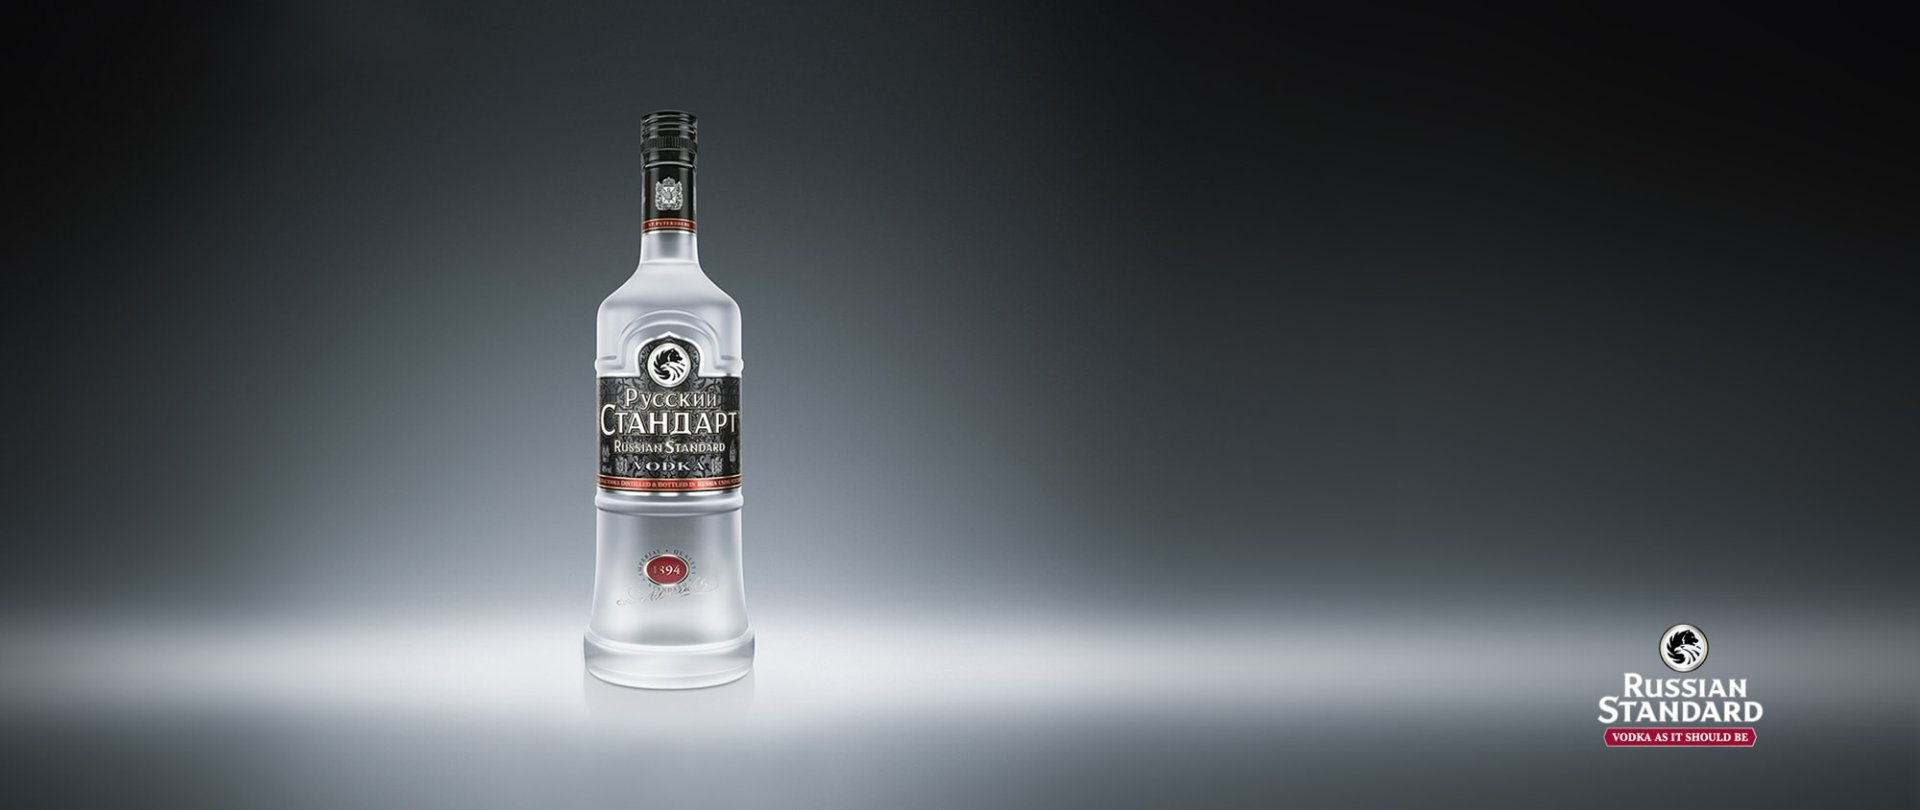 Russian Standard Vodka15